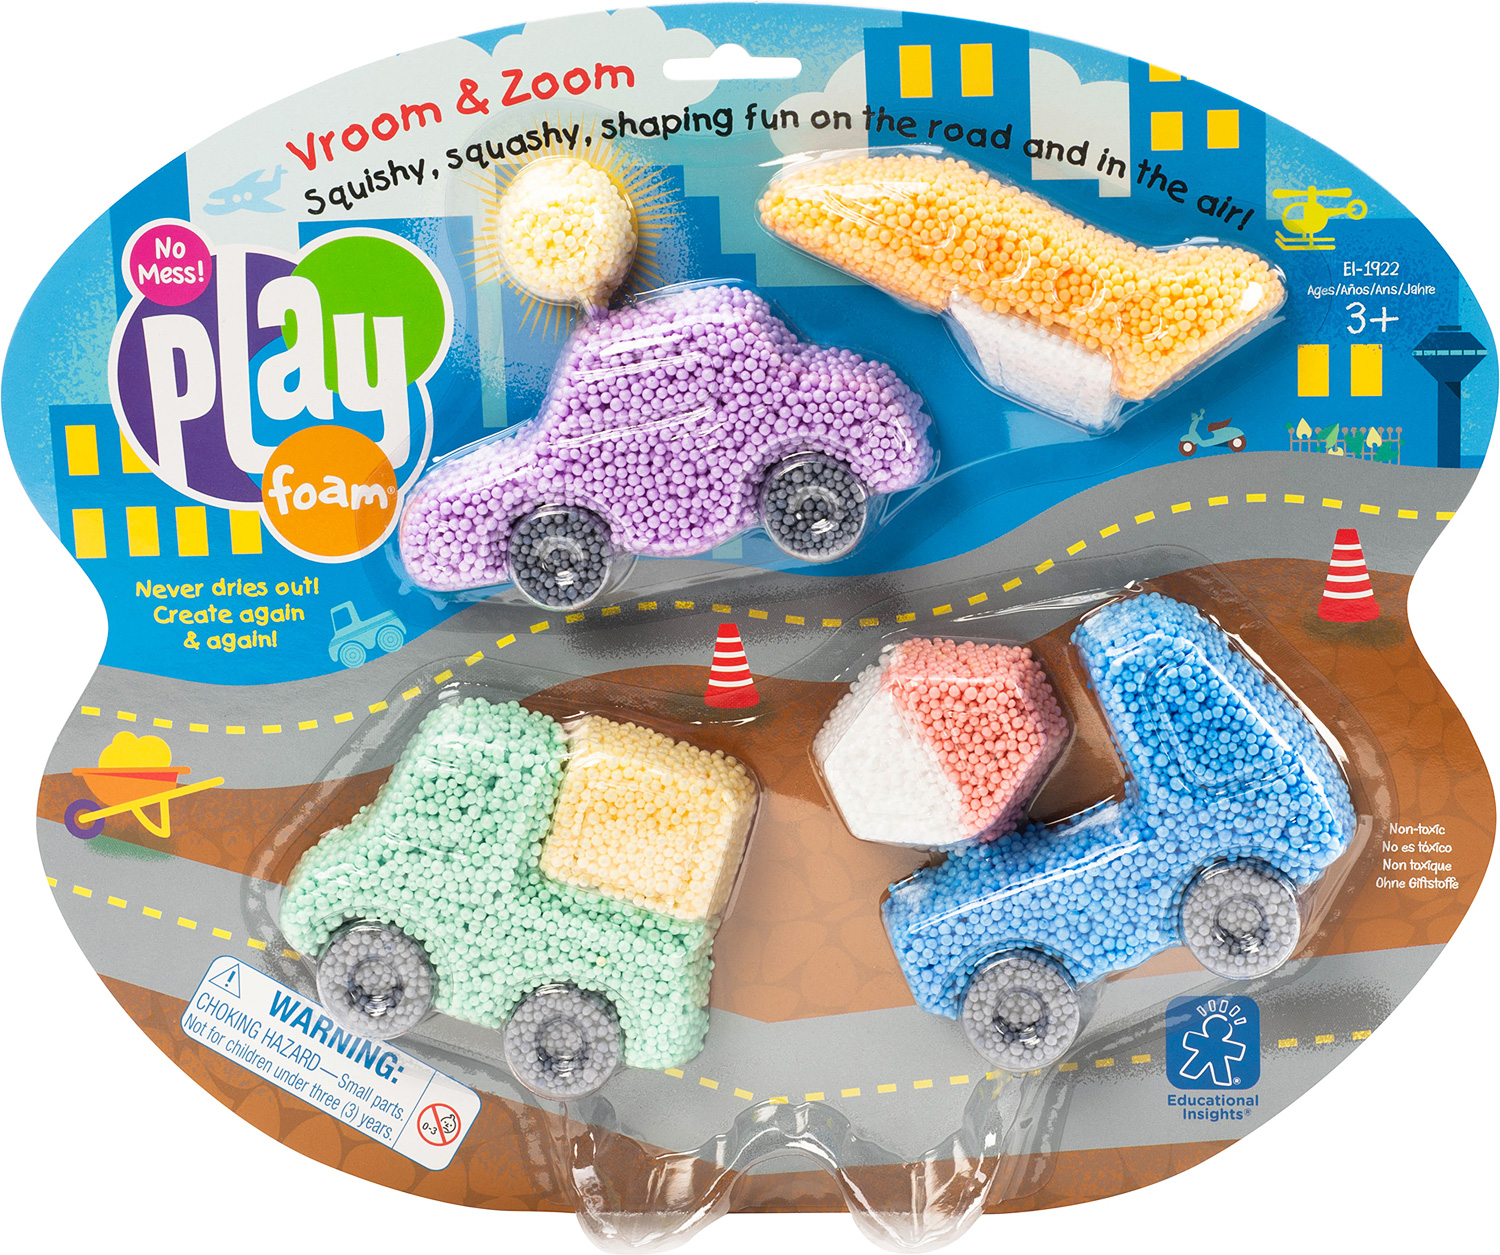 Playfoam Vroom & Zoom